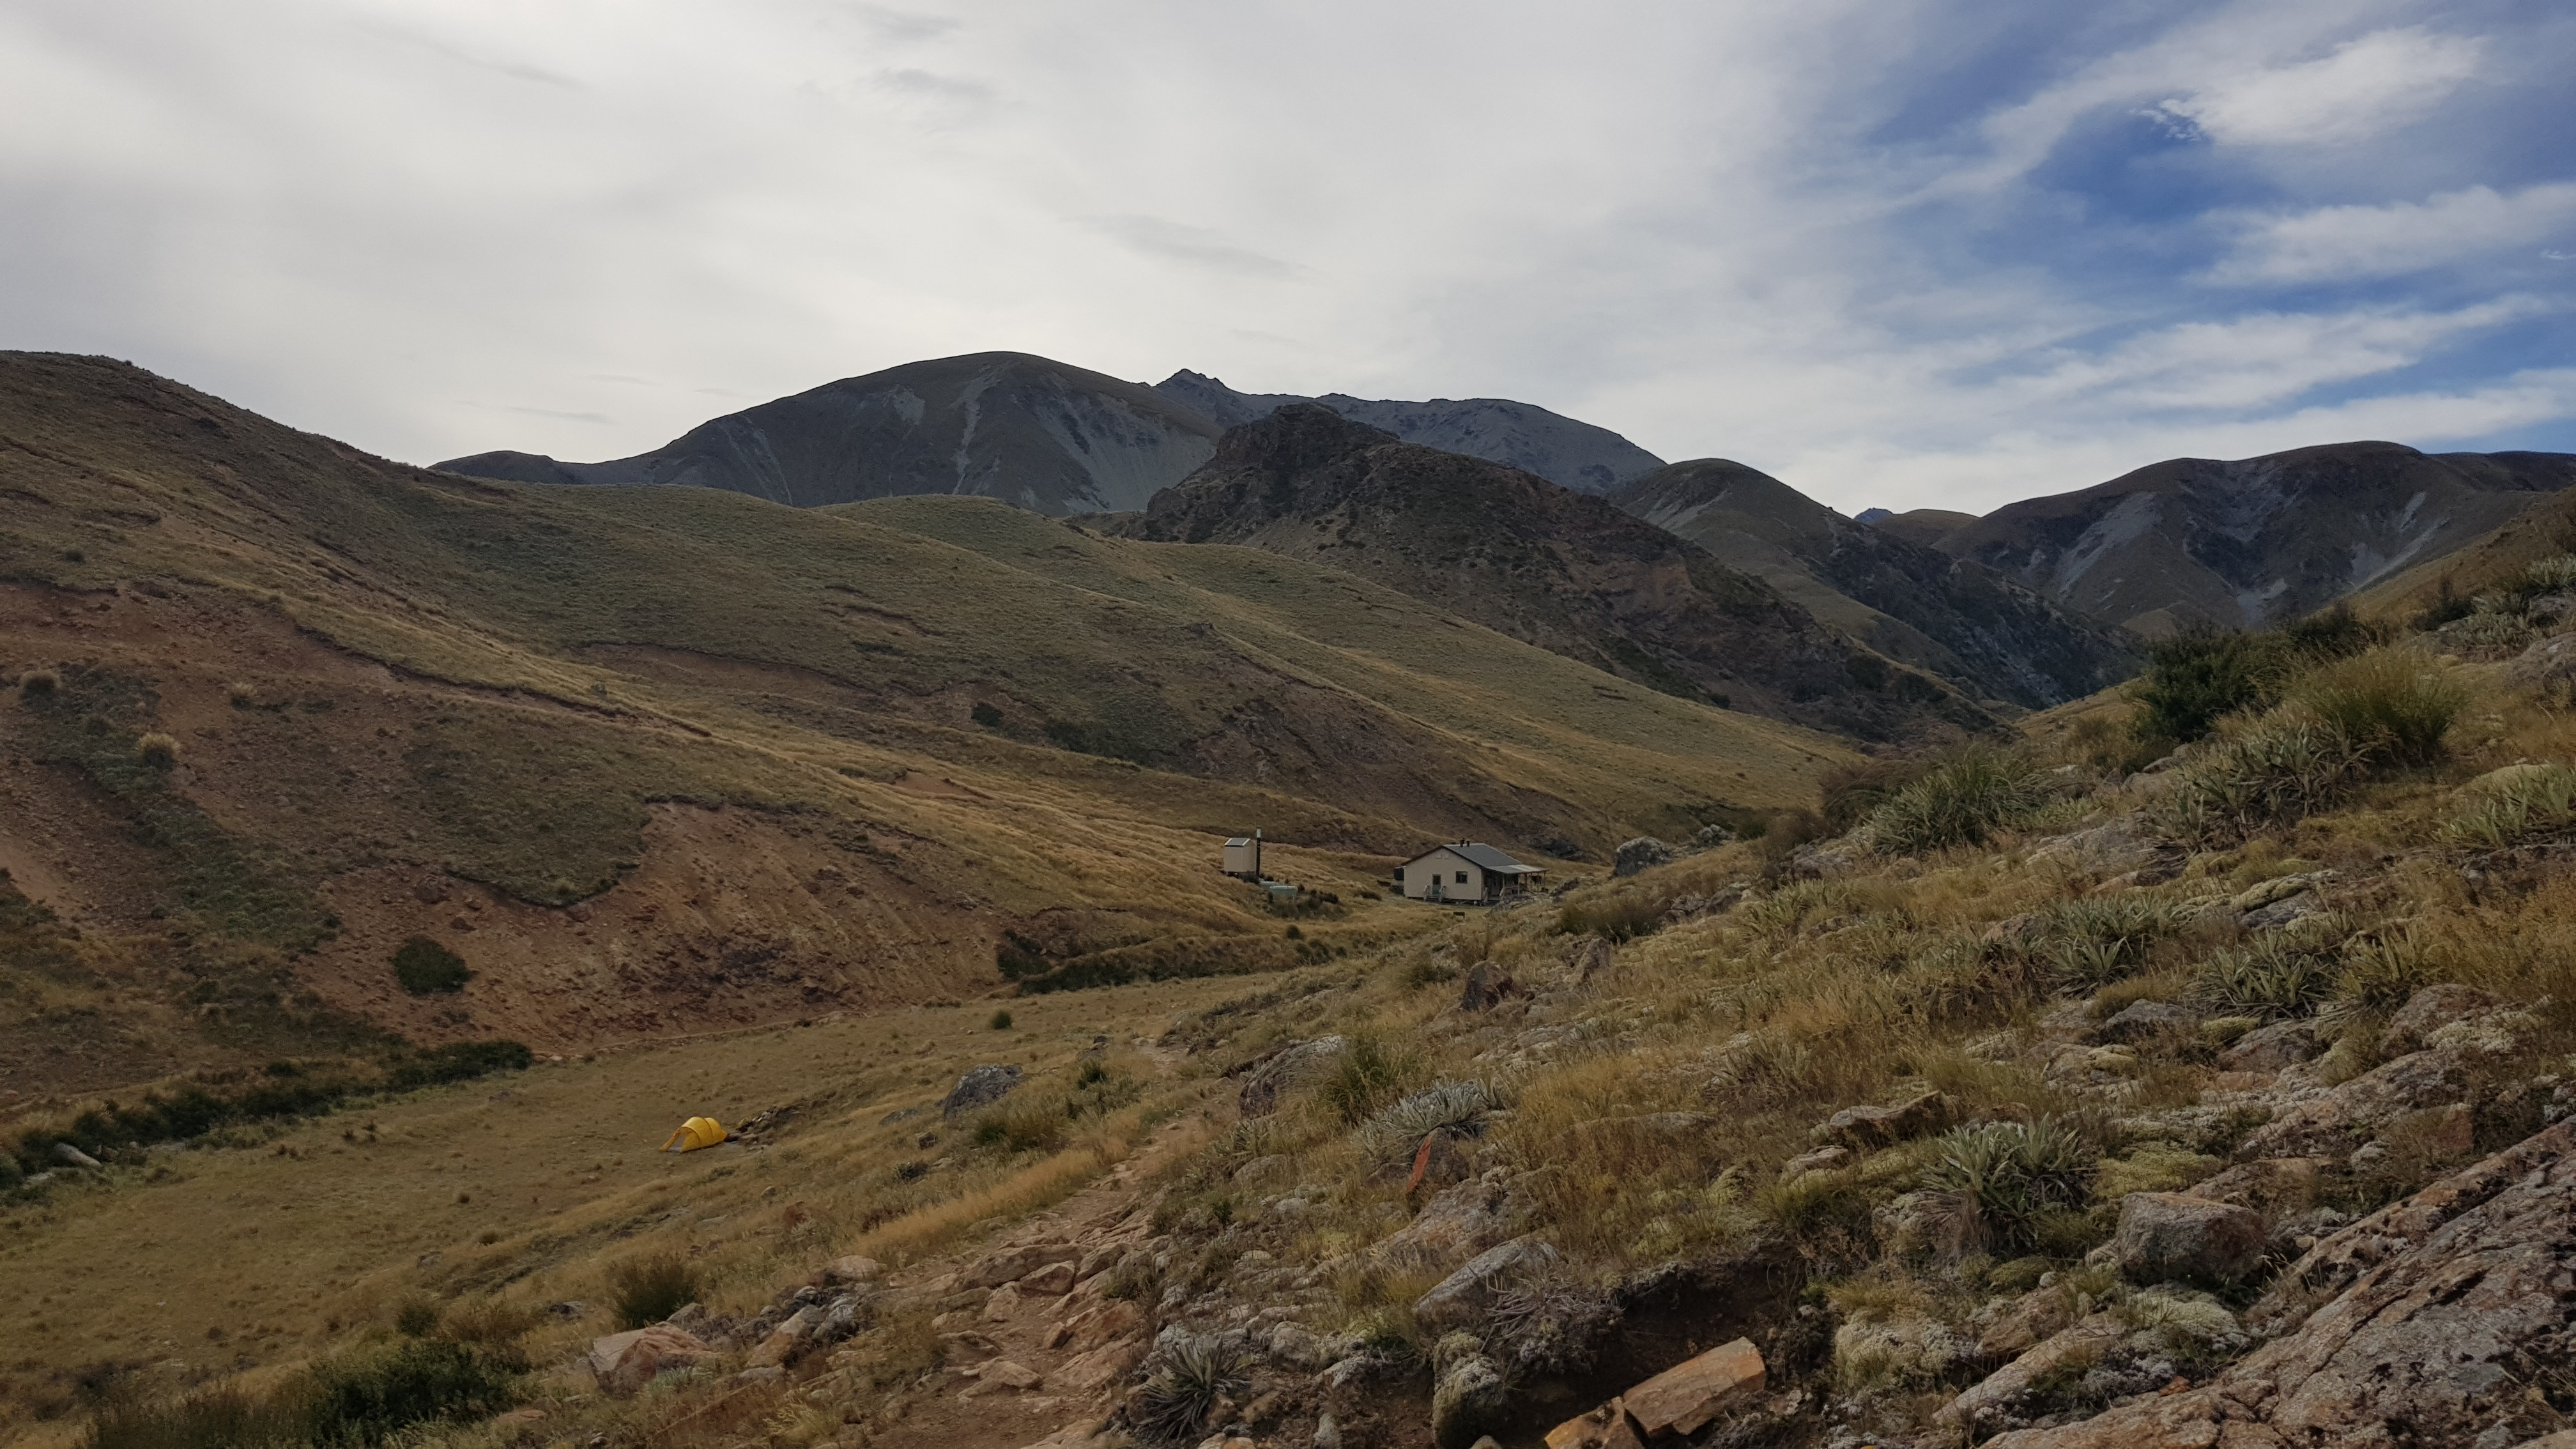 Looking back at Woolshed Creek hut